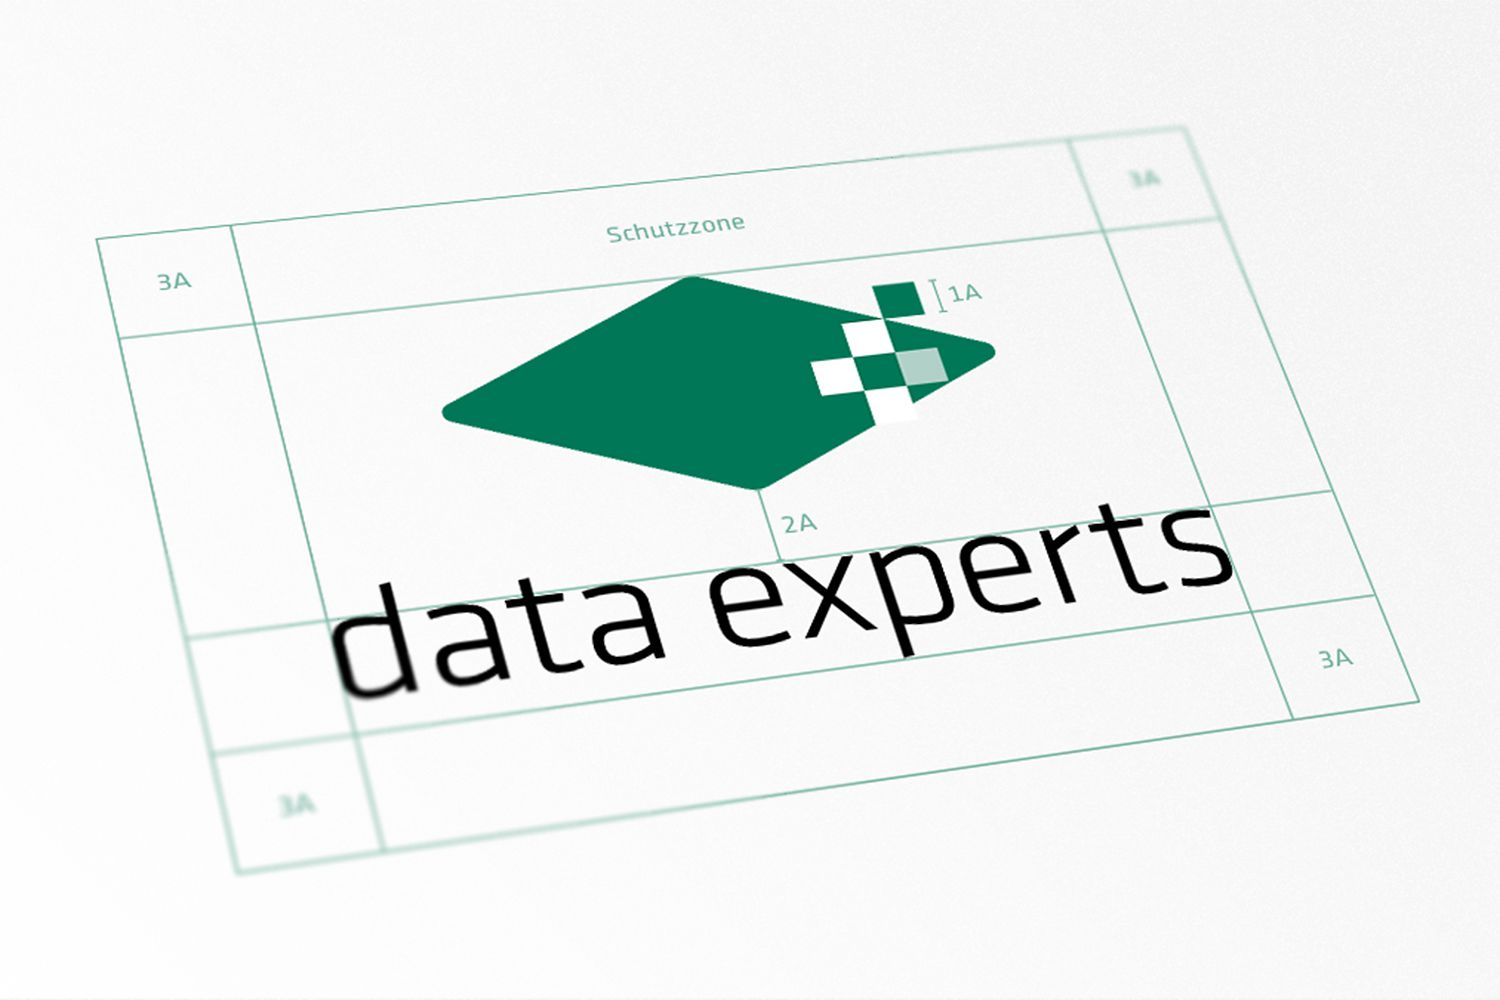 13° Crossmedia Agentur - data experts Branding